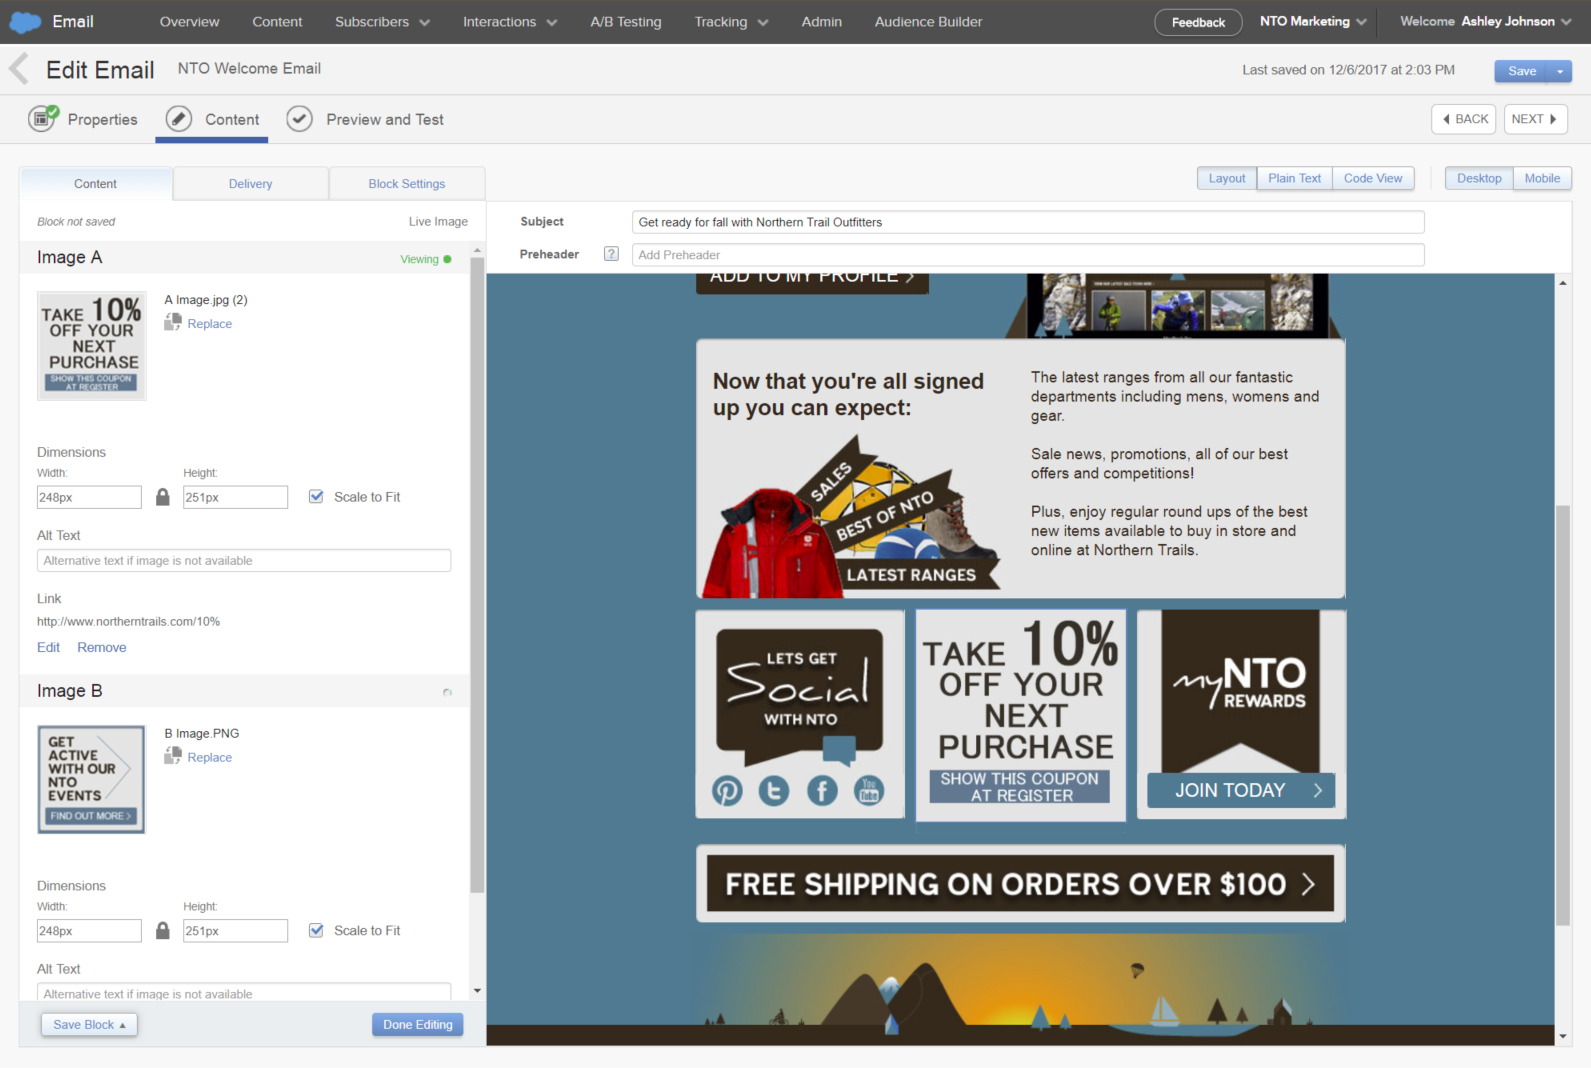 A screen in Email Studio showing how to upload images for an email and preview the email with the images in it